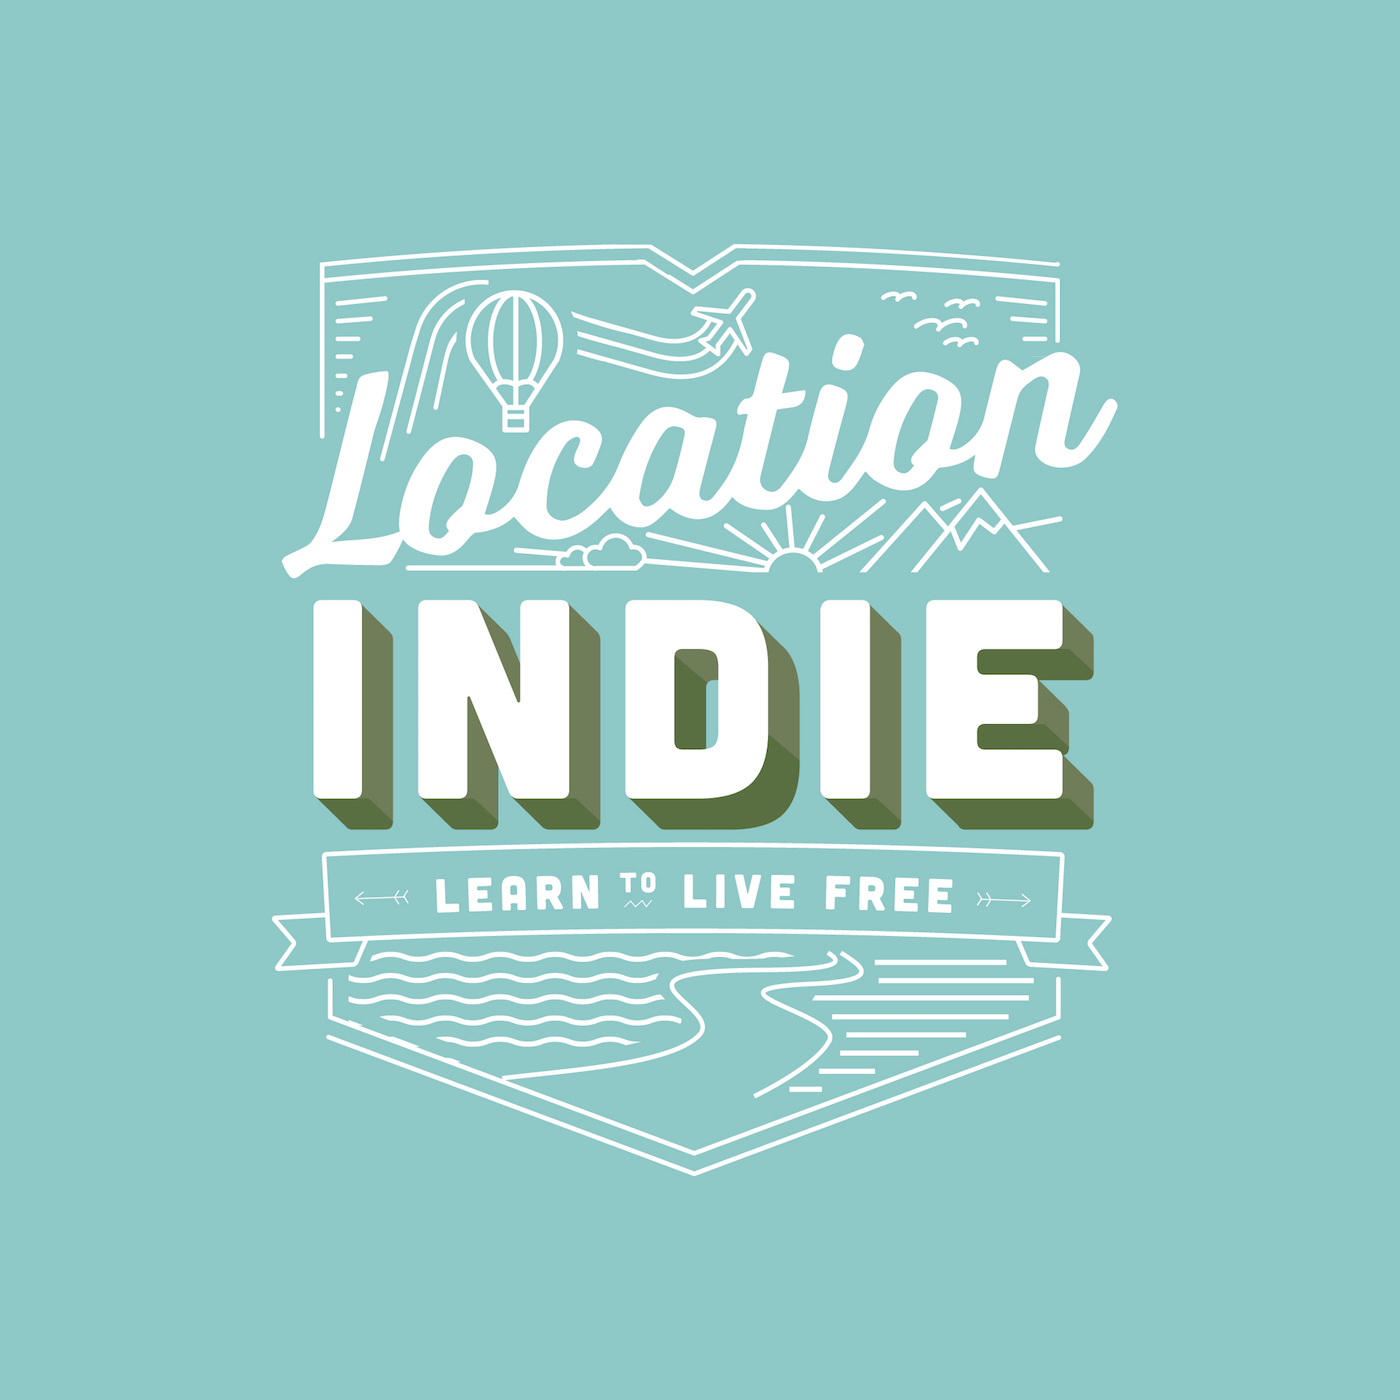 Location Indie: Raw And Honest Location Independent Lifestyle Talk: Inspired By Tim Ferriss, Tropical MBA and Pat Flynn